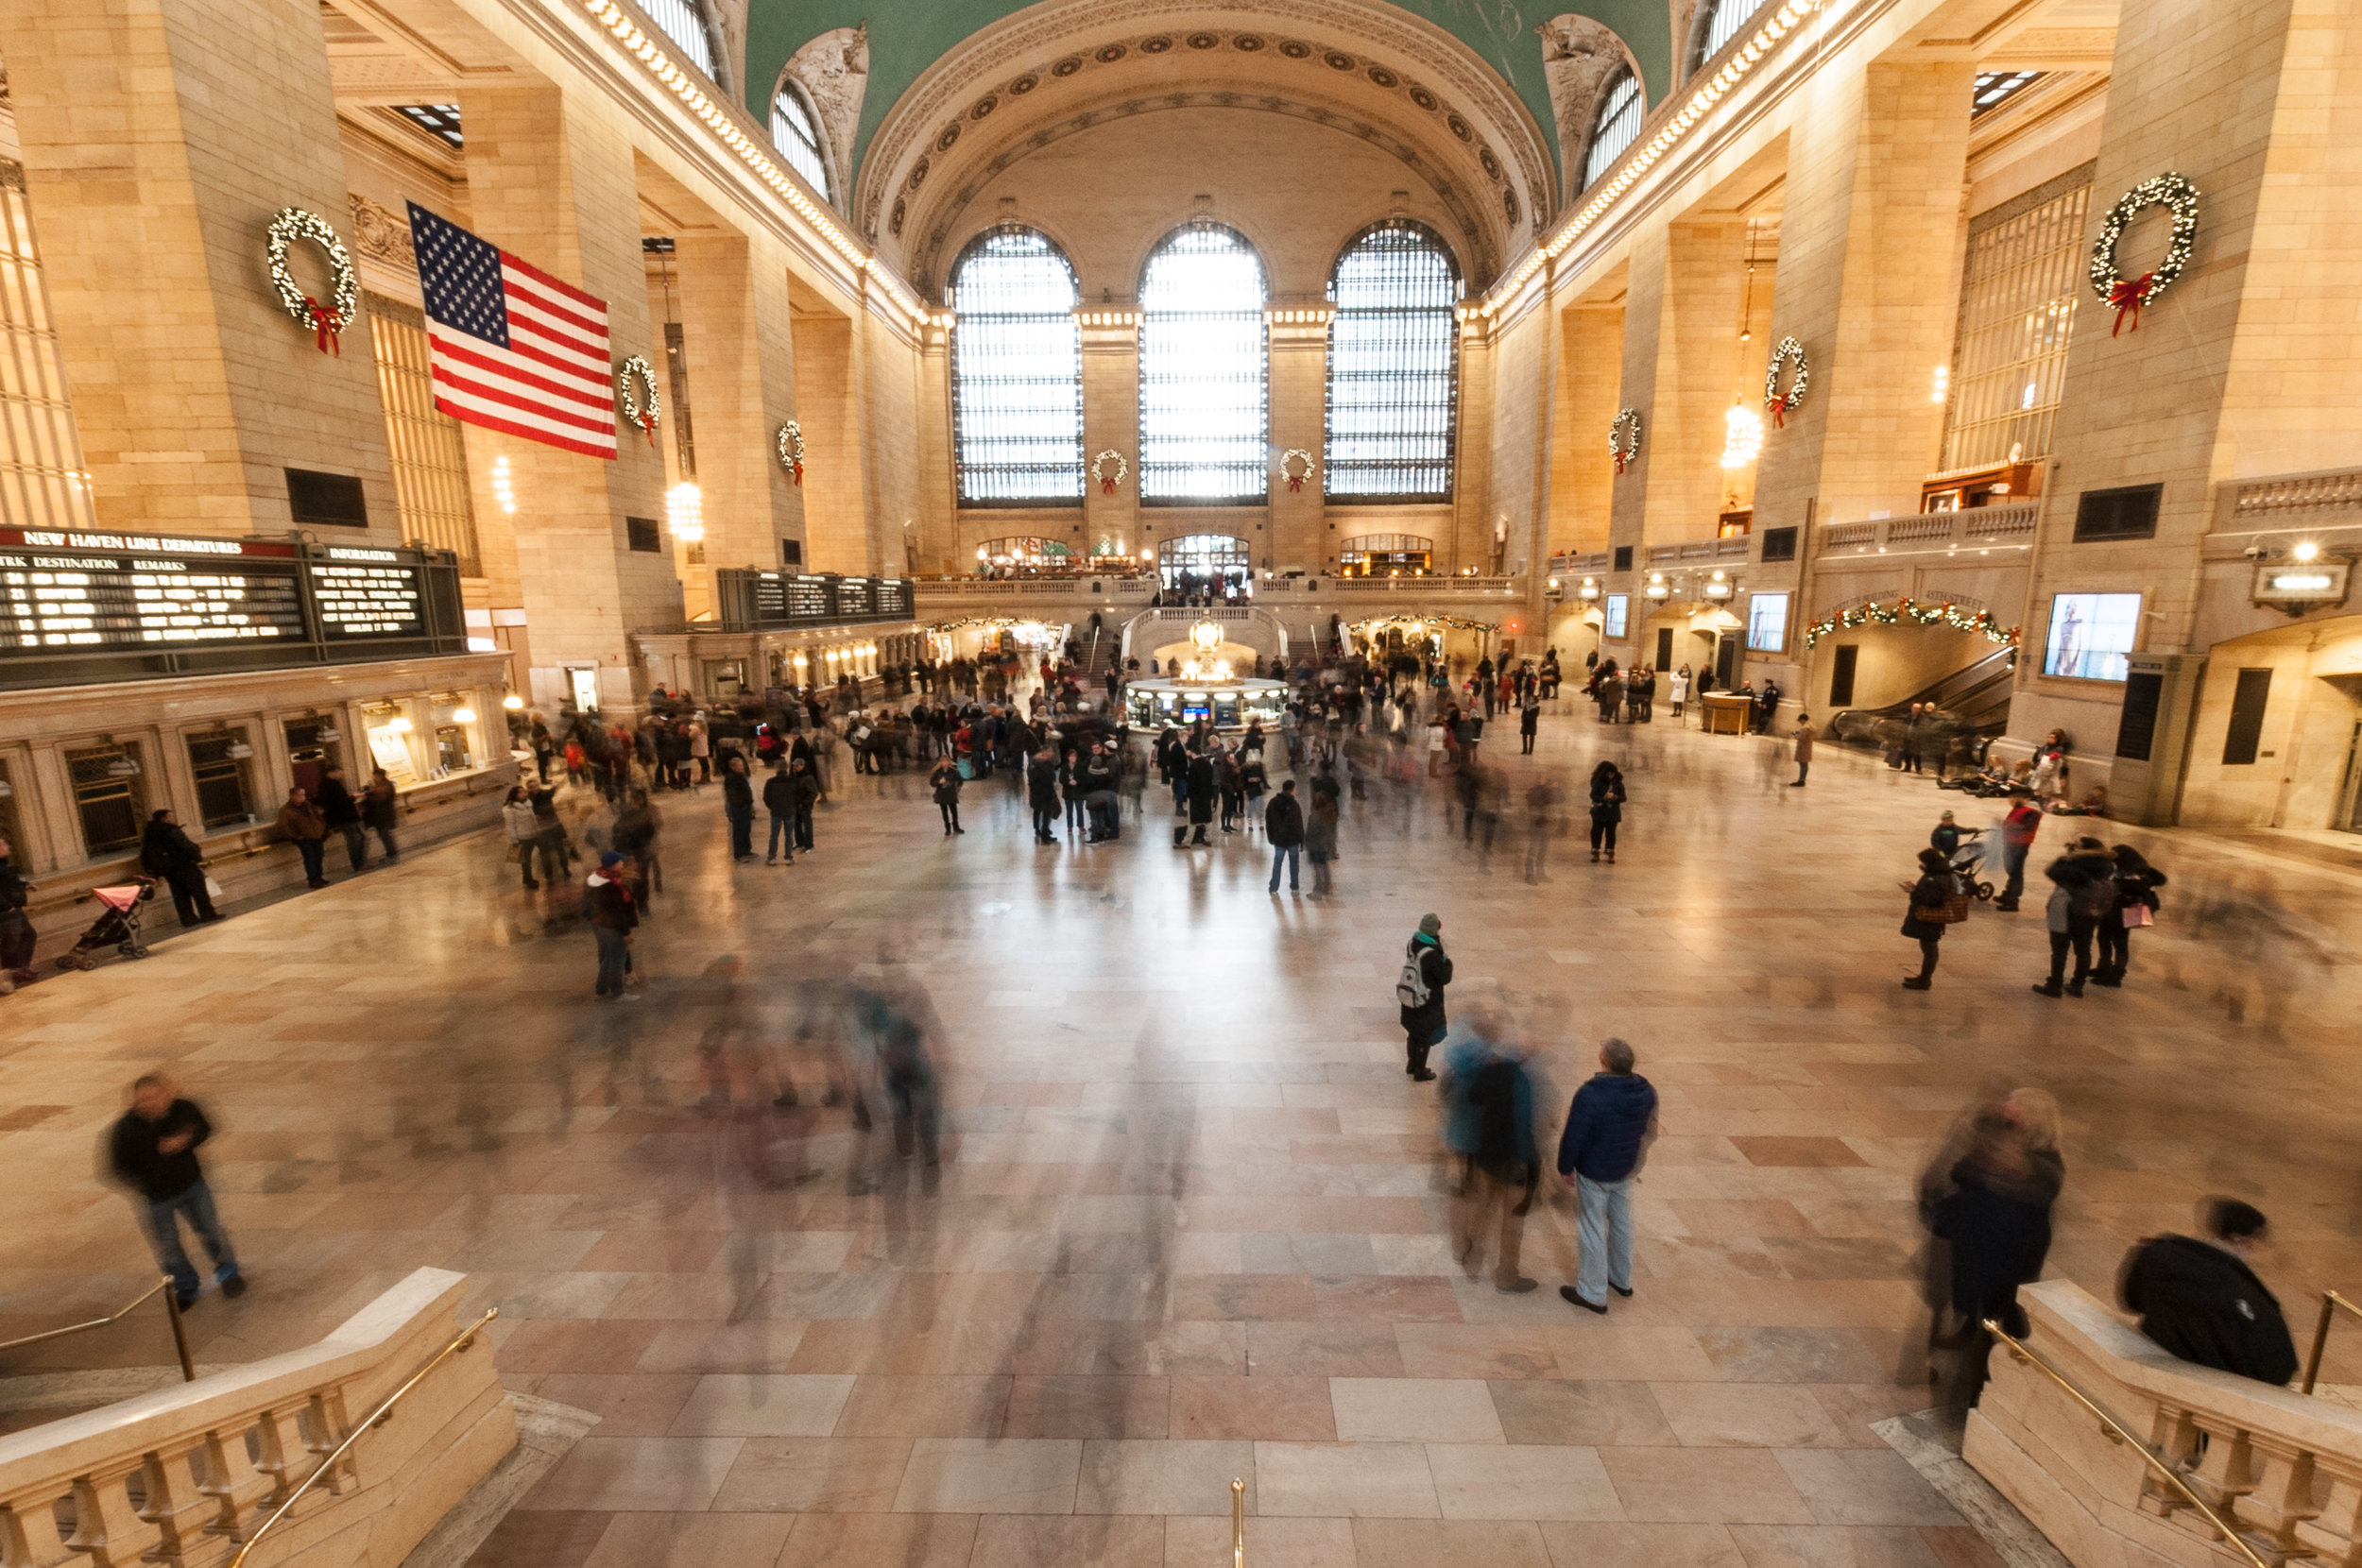 Grand Central Station Dec. 8th 2016-6.jpg